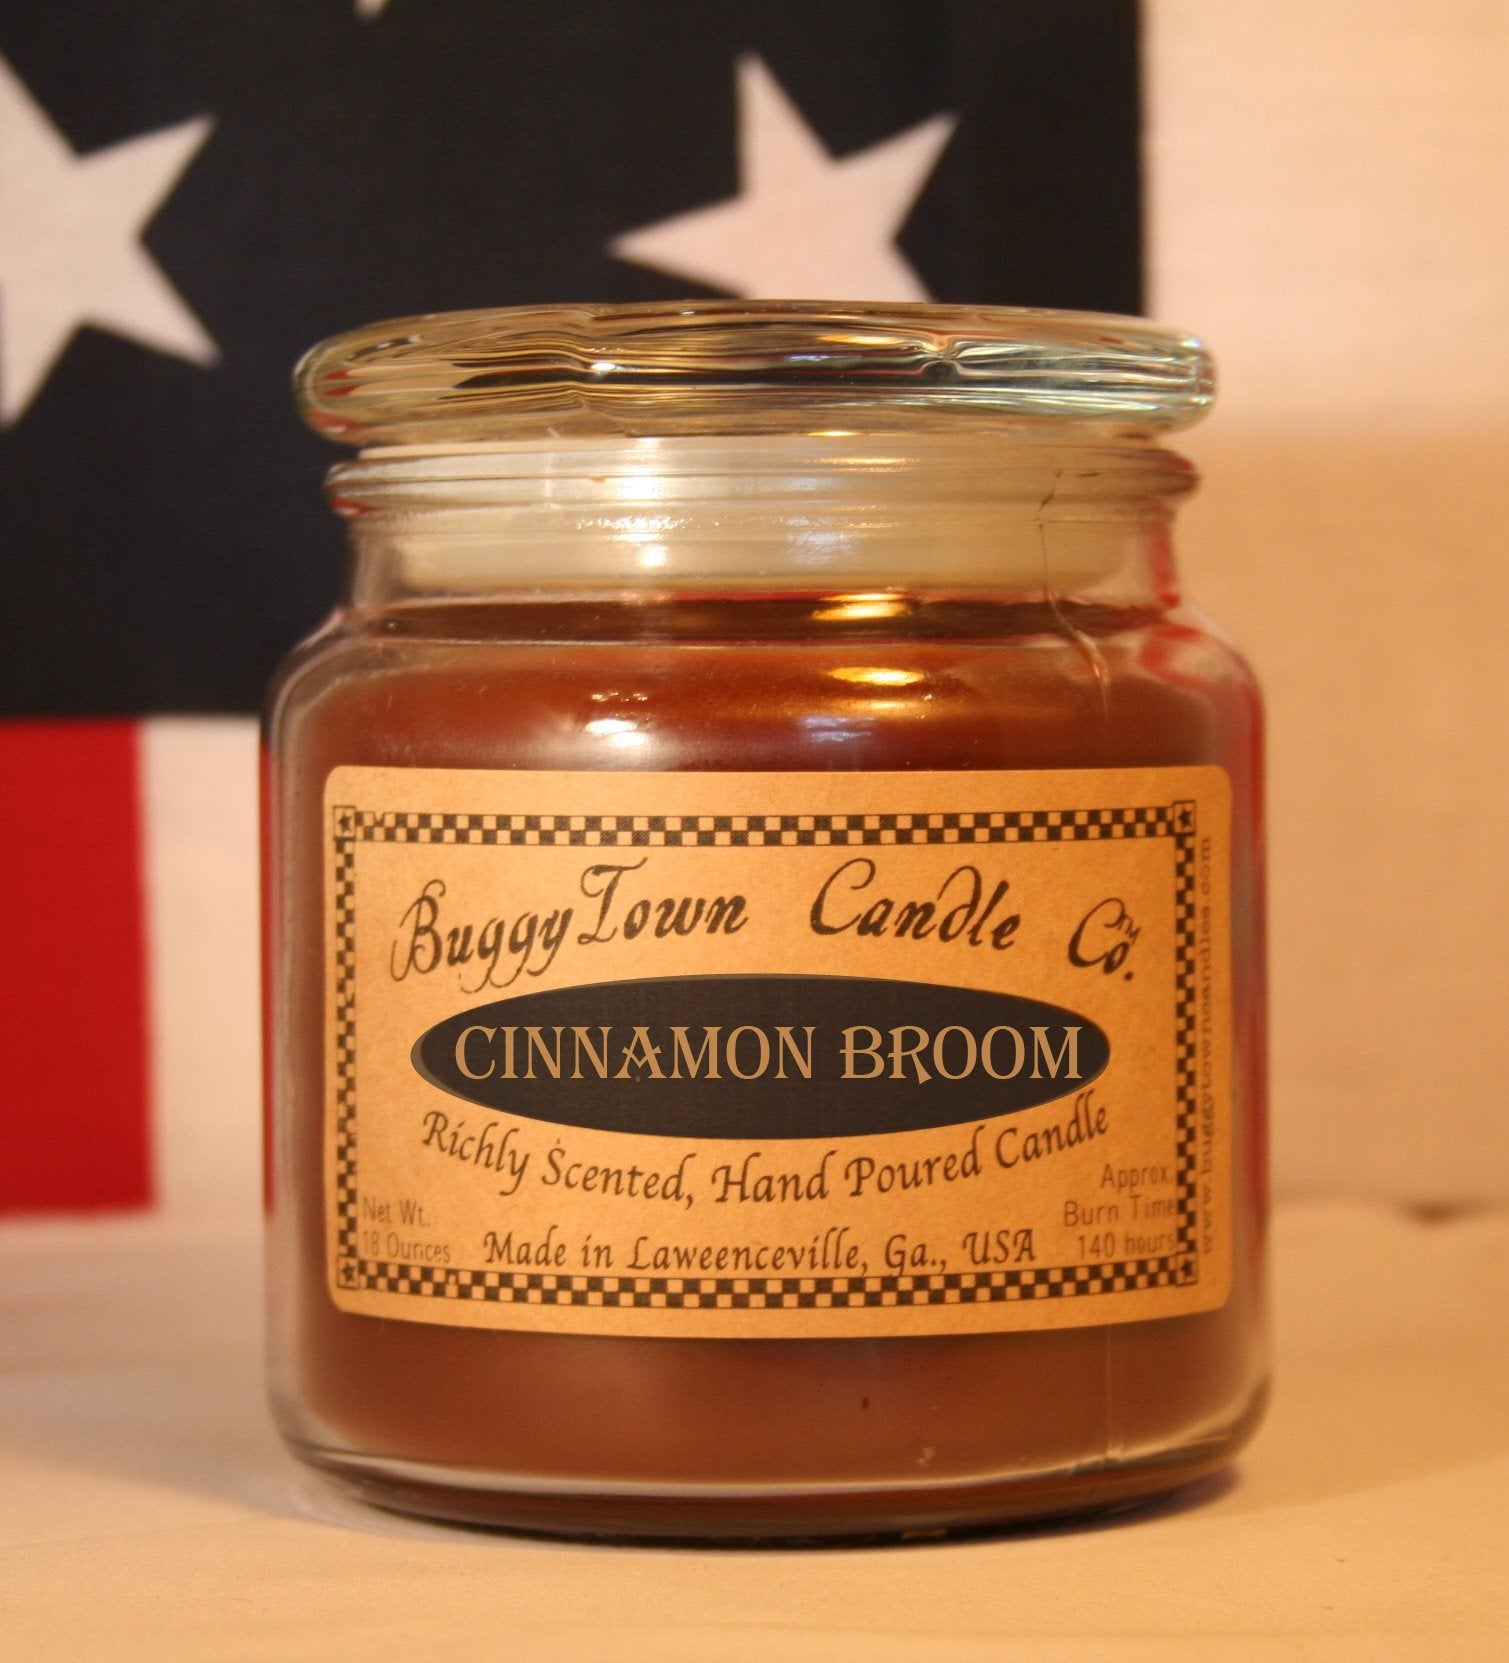 Cinnamon Broom Candles